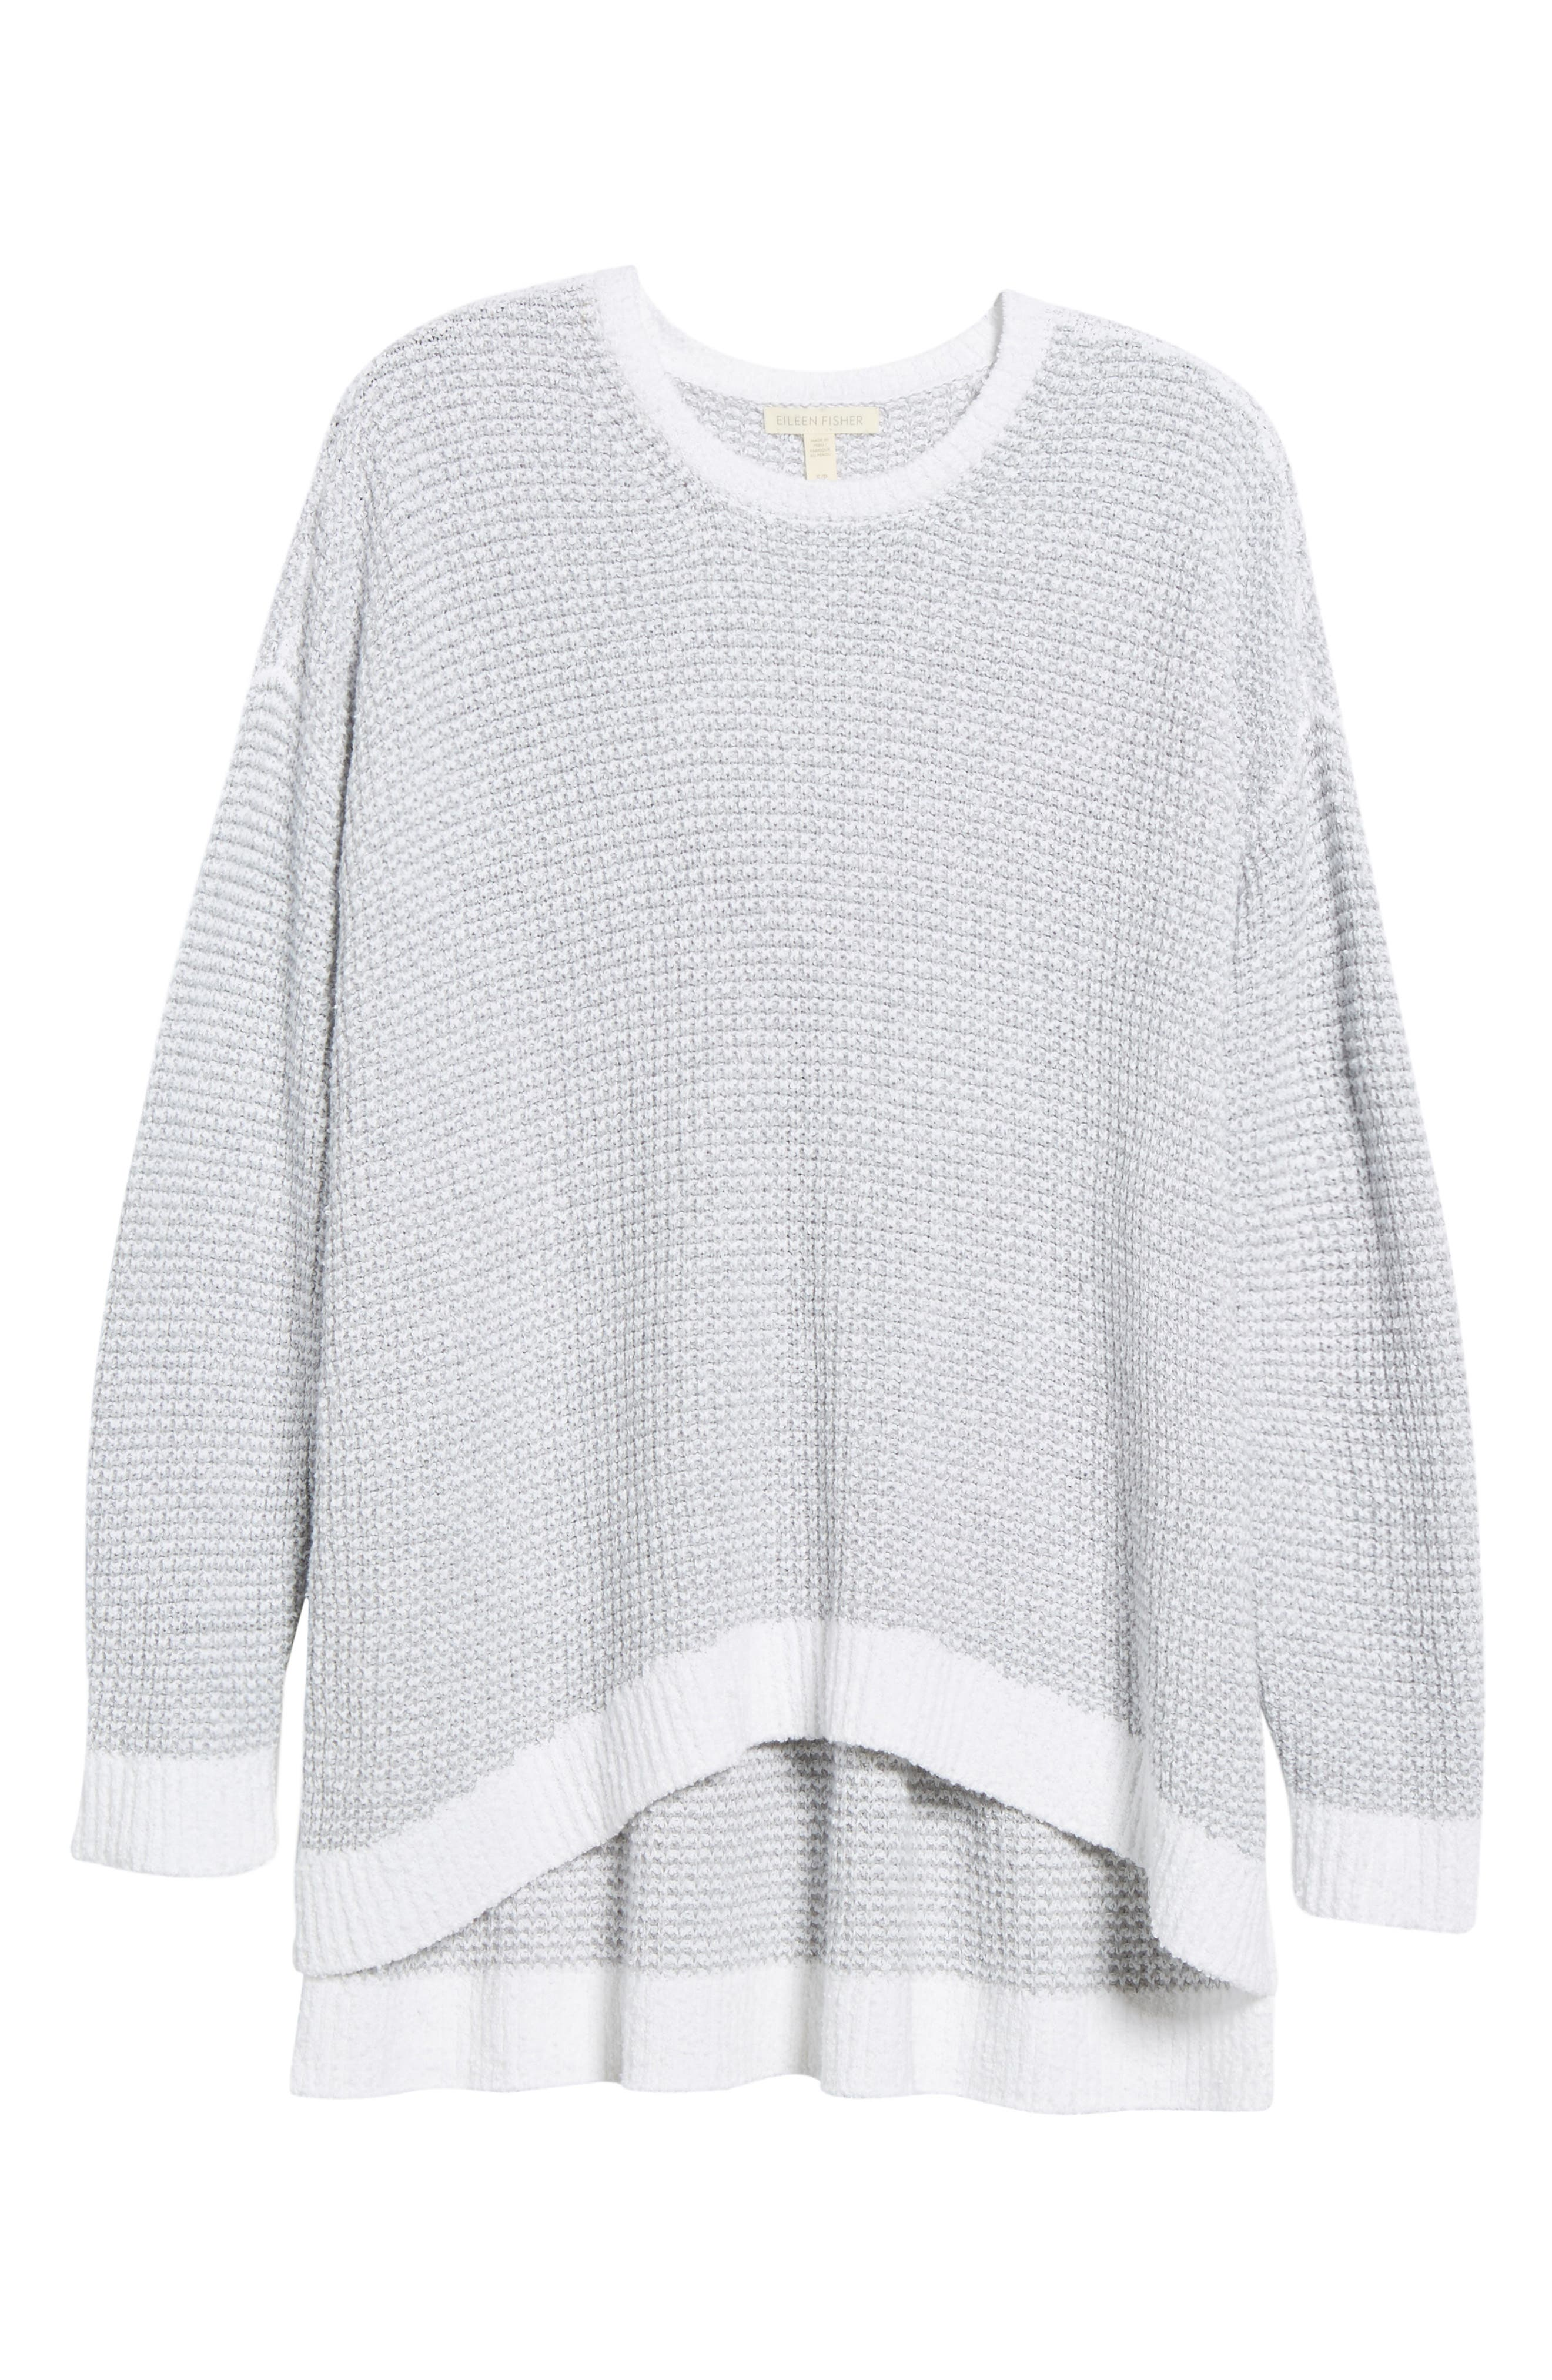 Waffled Organic Cotton Sweater,                             Alternate thumbnail 6, color,                             022